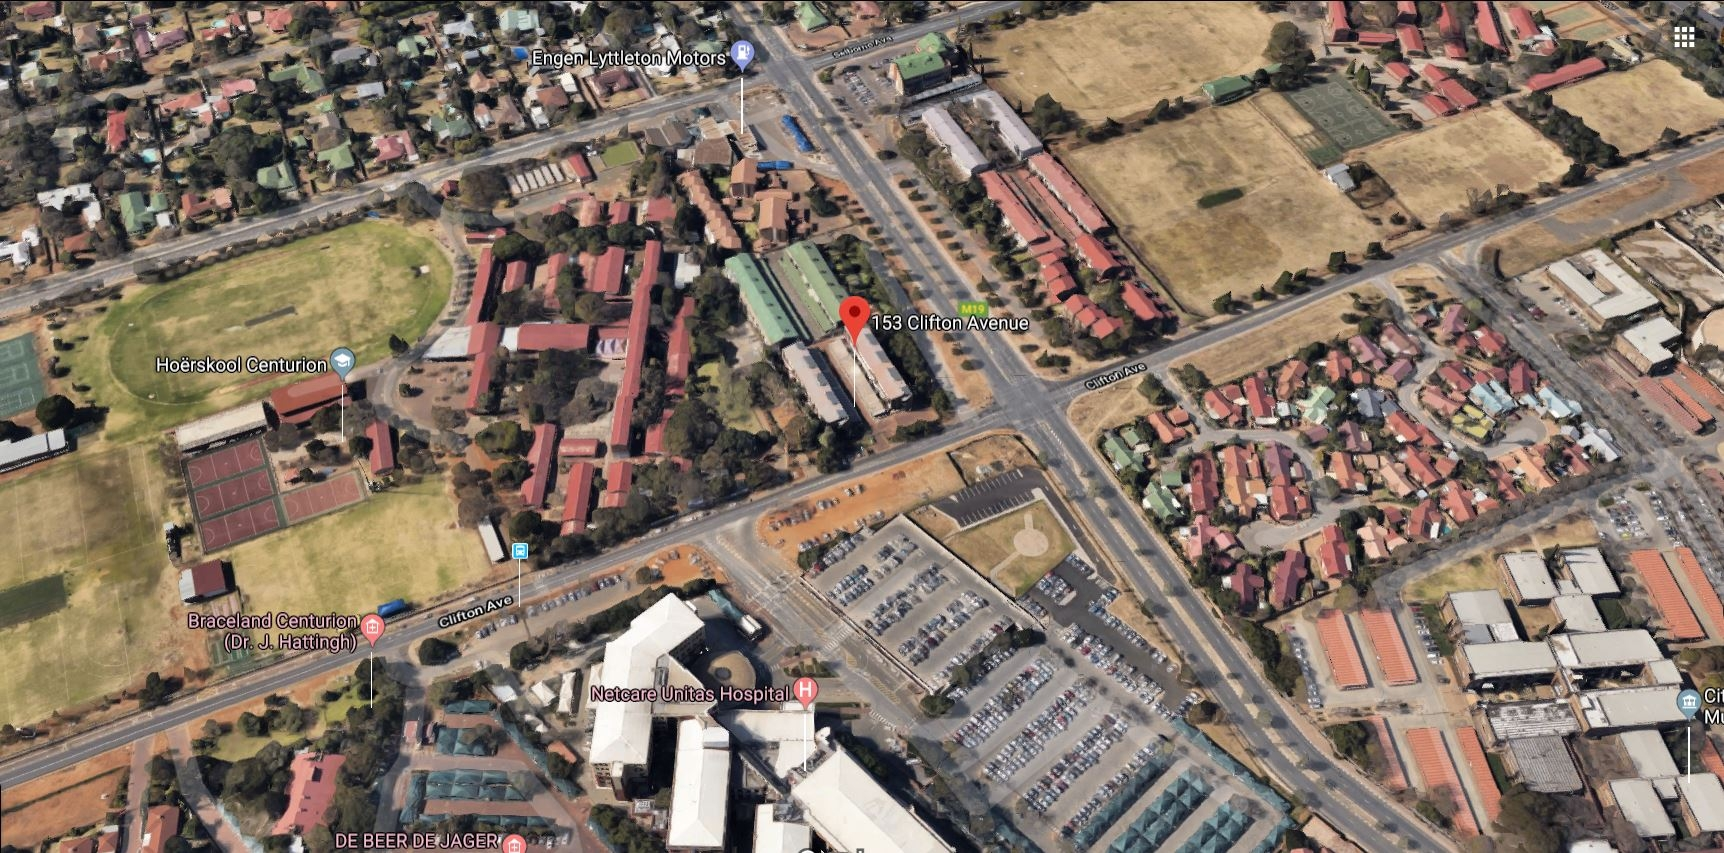 Aerial view showing location of complex